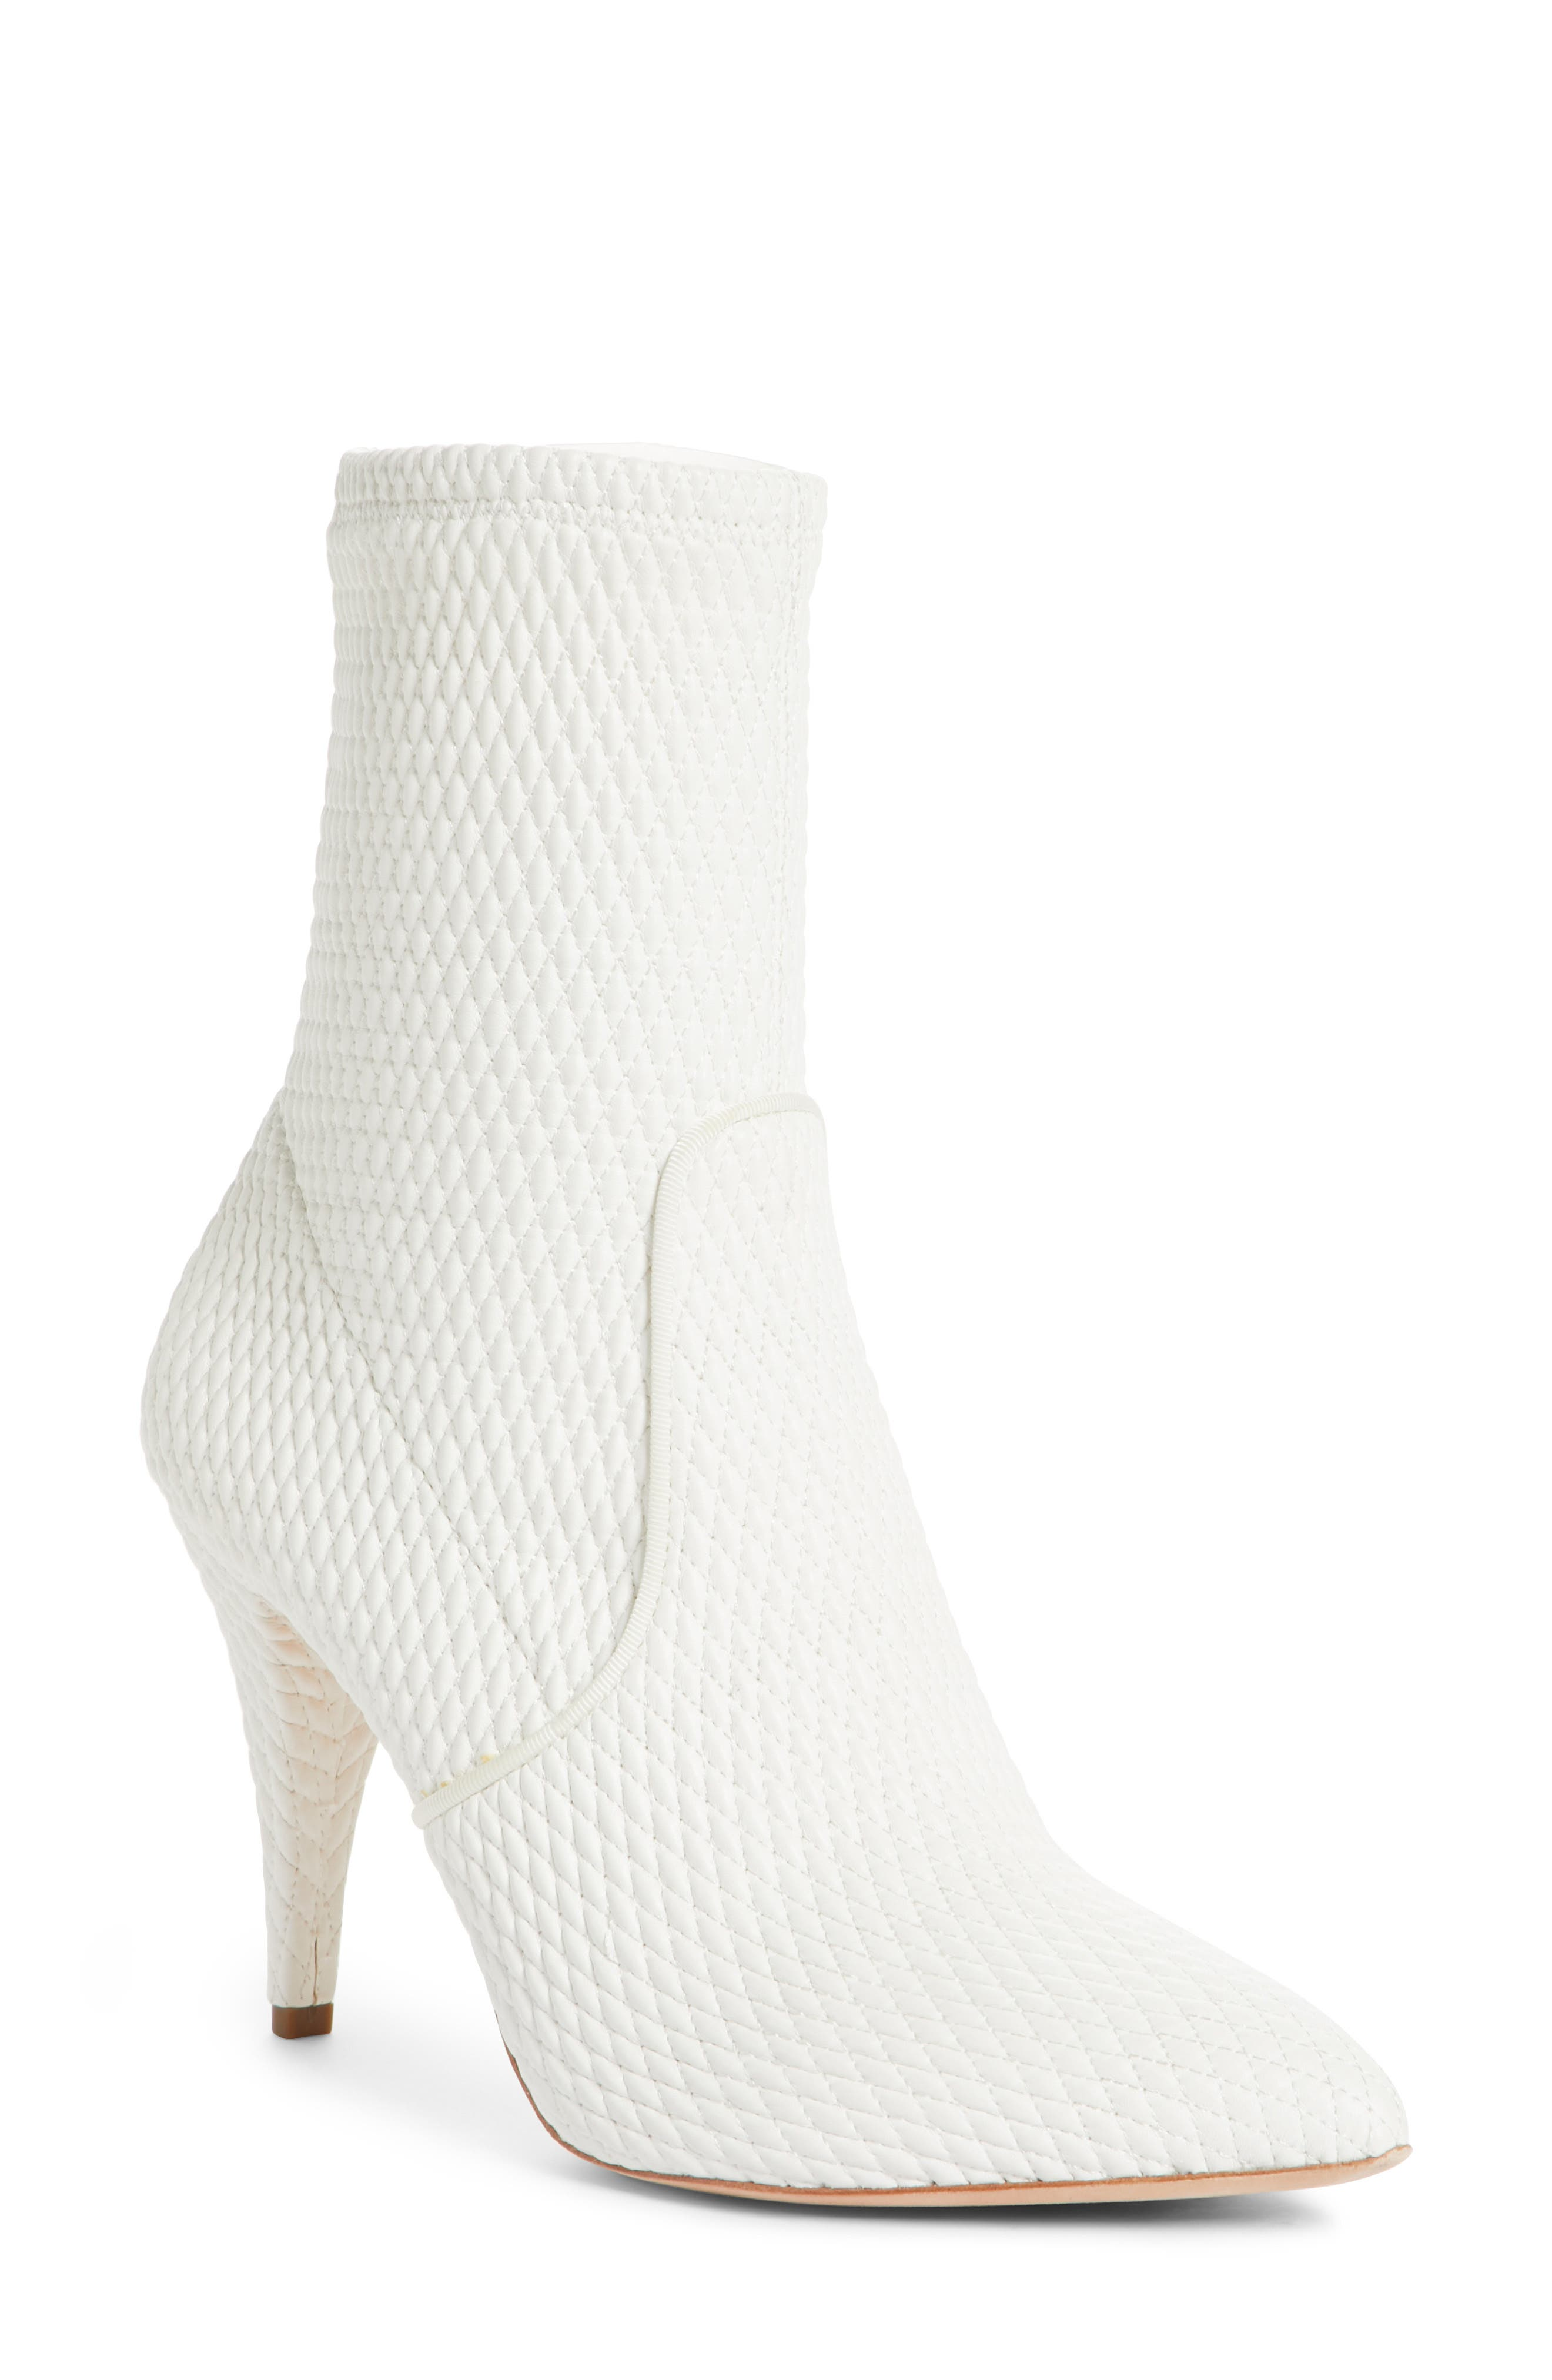 Hedde Pointy Toe Bootie,                         Main,                         color, White